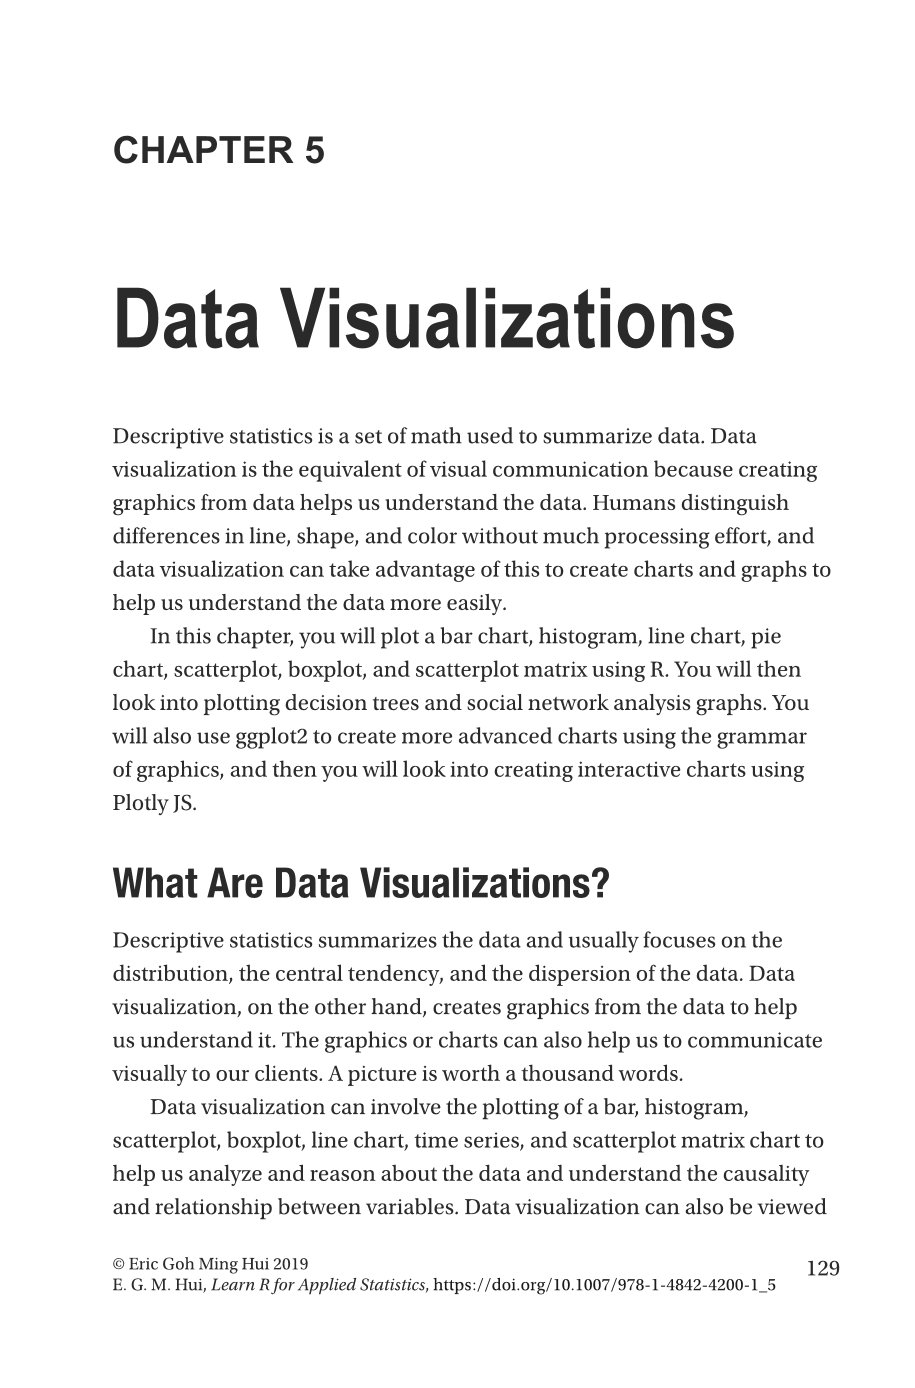 Learn R for Applied Statistics: With Data Visualizations, Regressions, and Statistics-preview-3